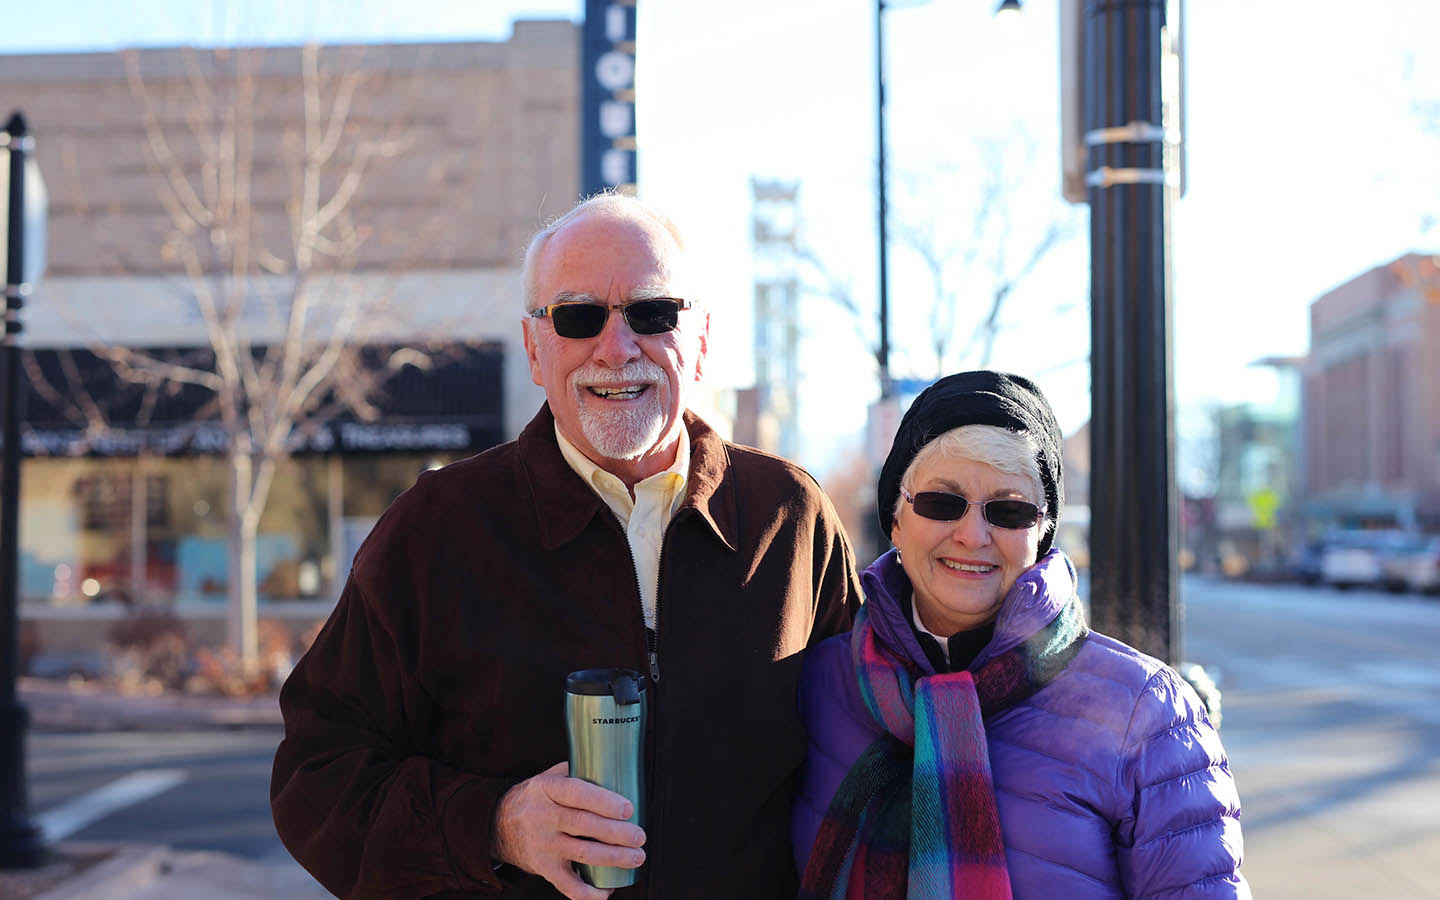 Cochlear recipient Tom and his wife Brenda pose for a photo on the street